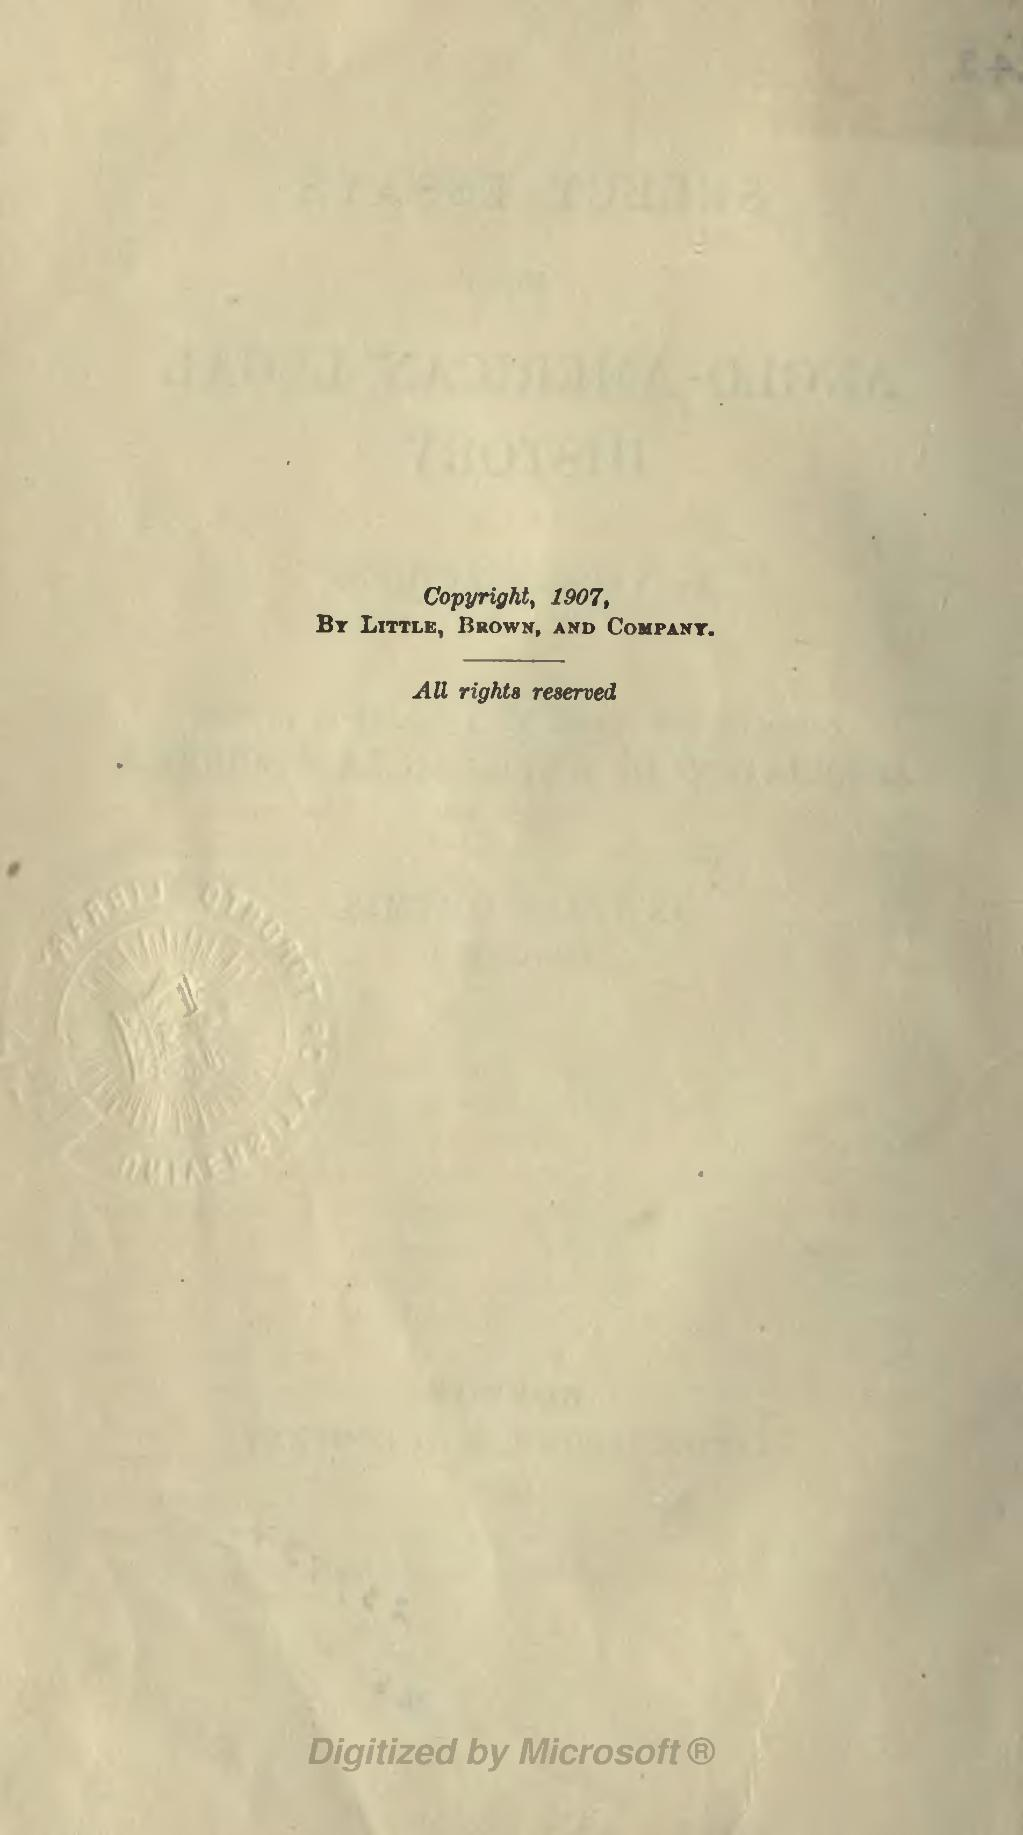 essays in the history of canadian law volume 2 The literary history of saskatchewan: volume 2 ~ progressions - google books result get this from a library  essays on canadian prairie literature (2008), as well.